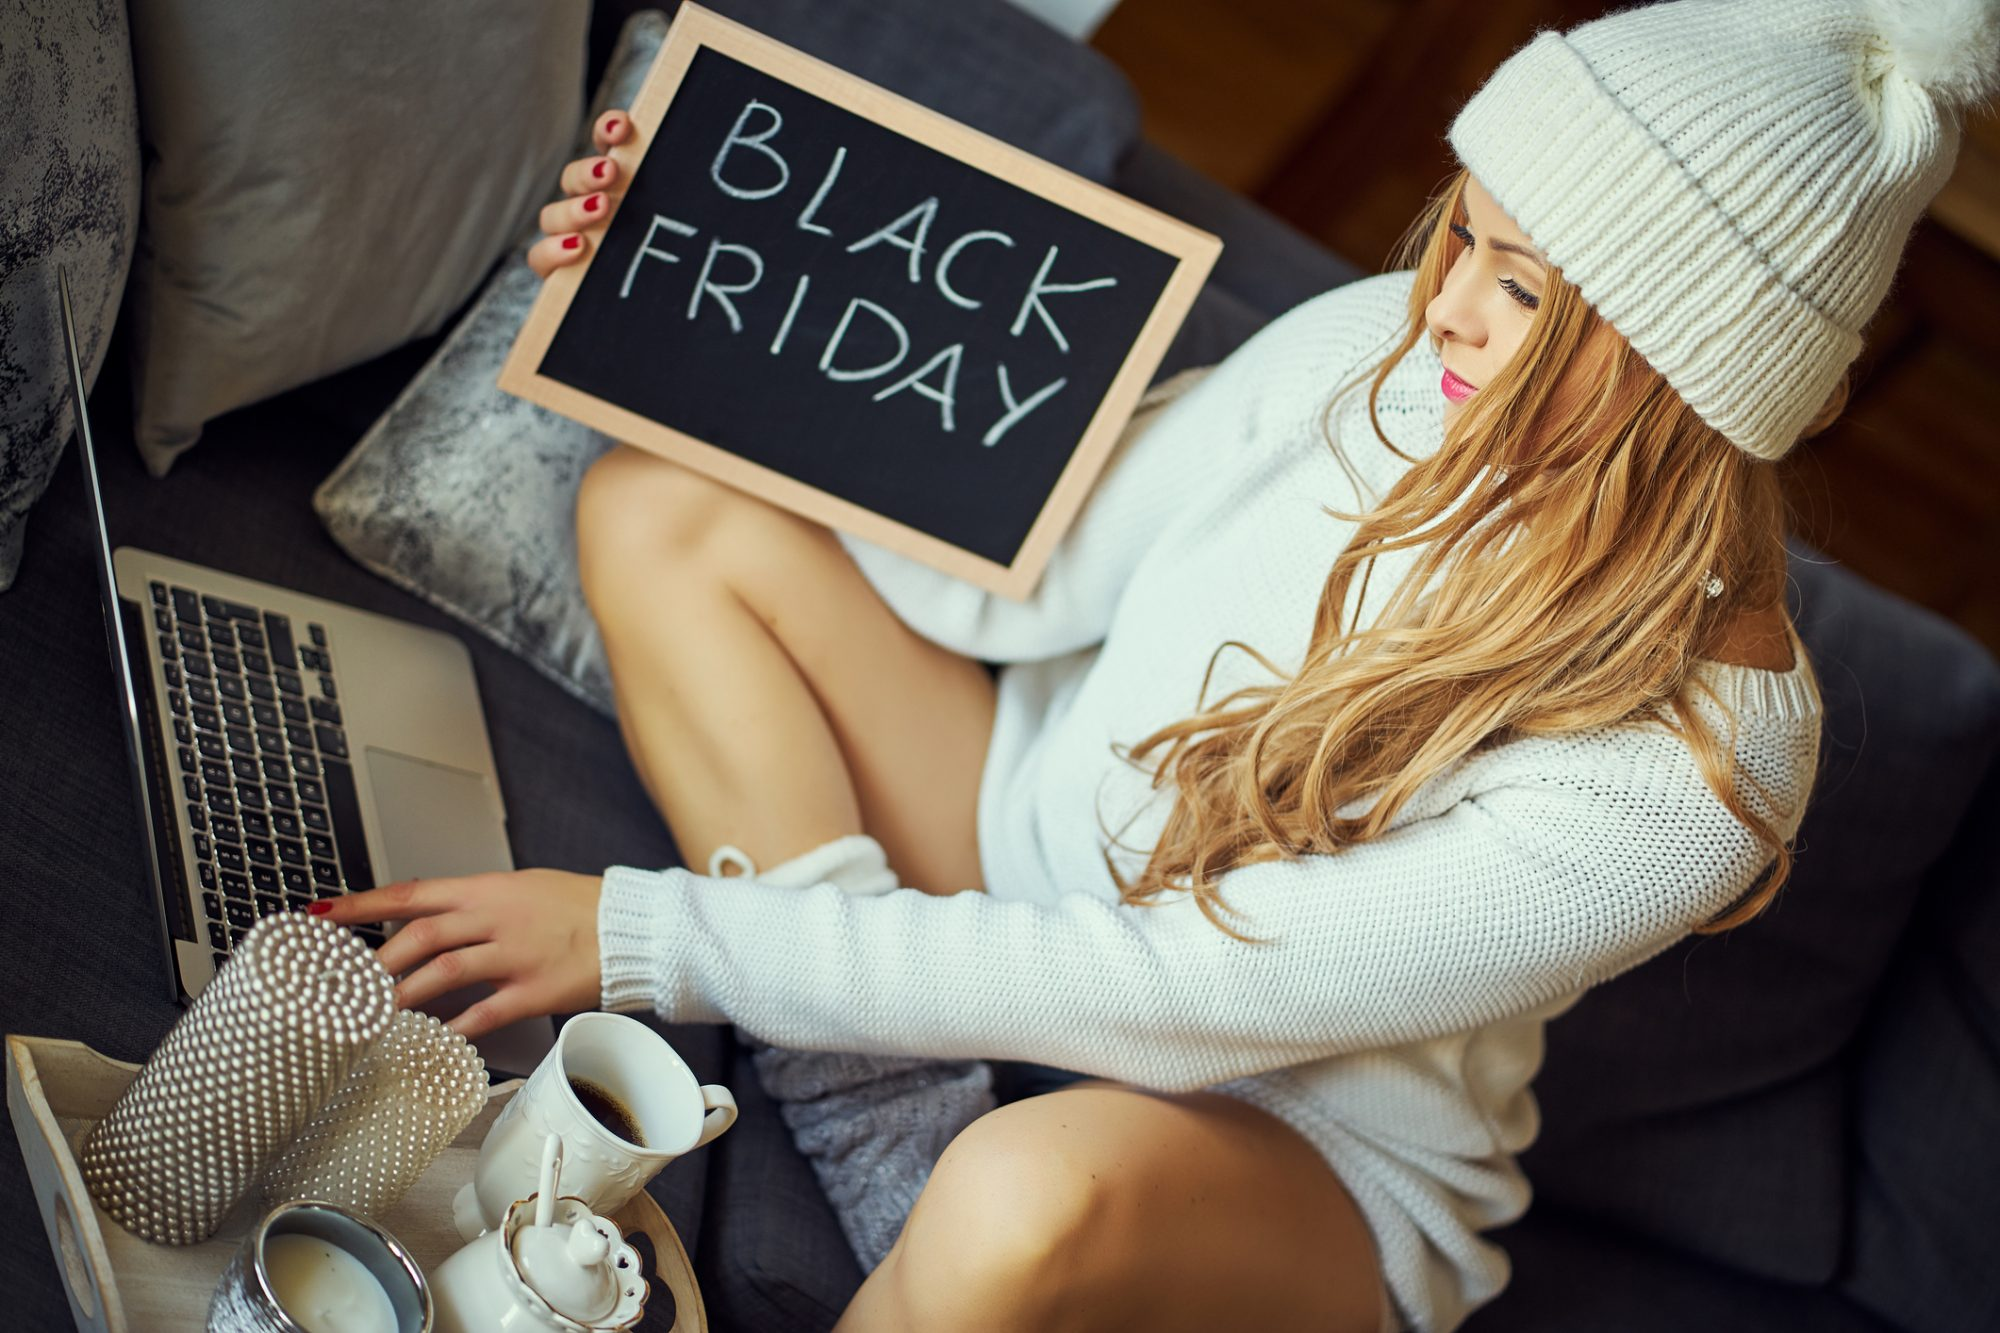 Woman With Black Friday Text Sitting On Sofa At Home